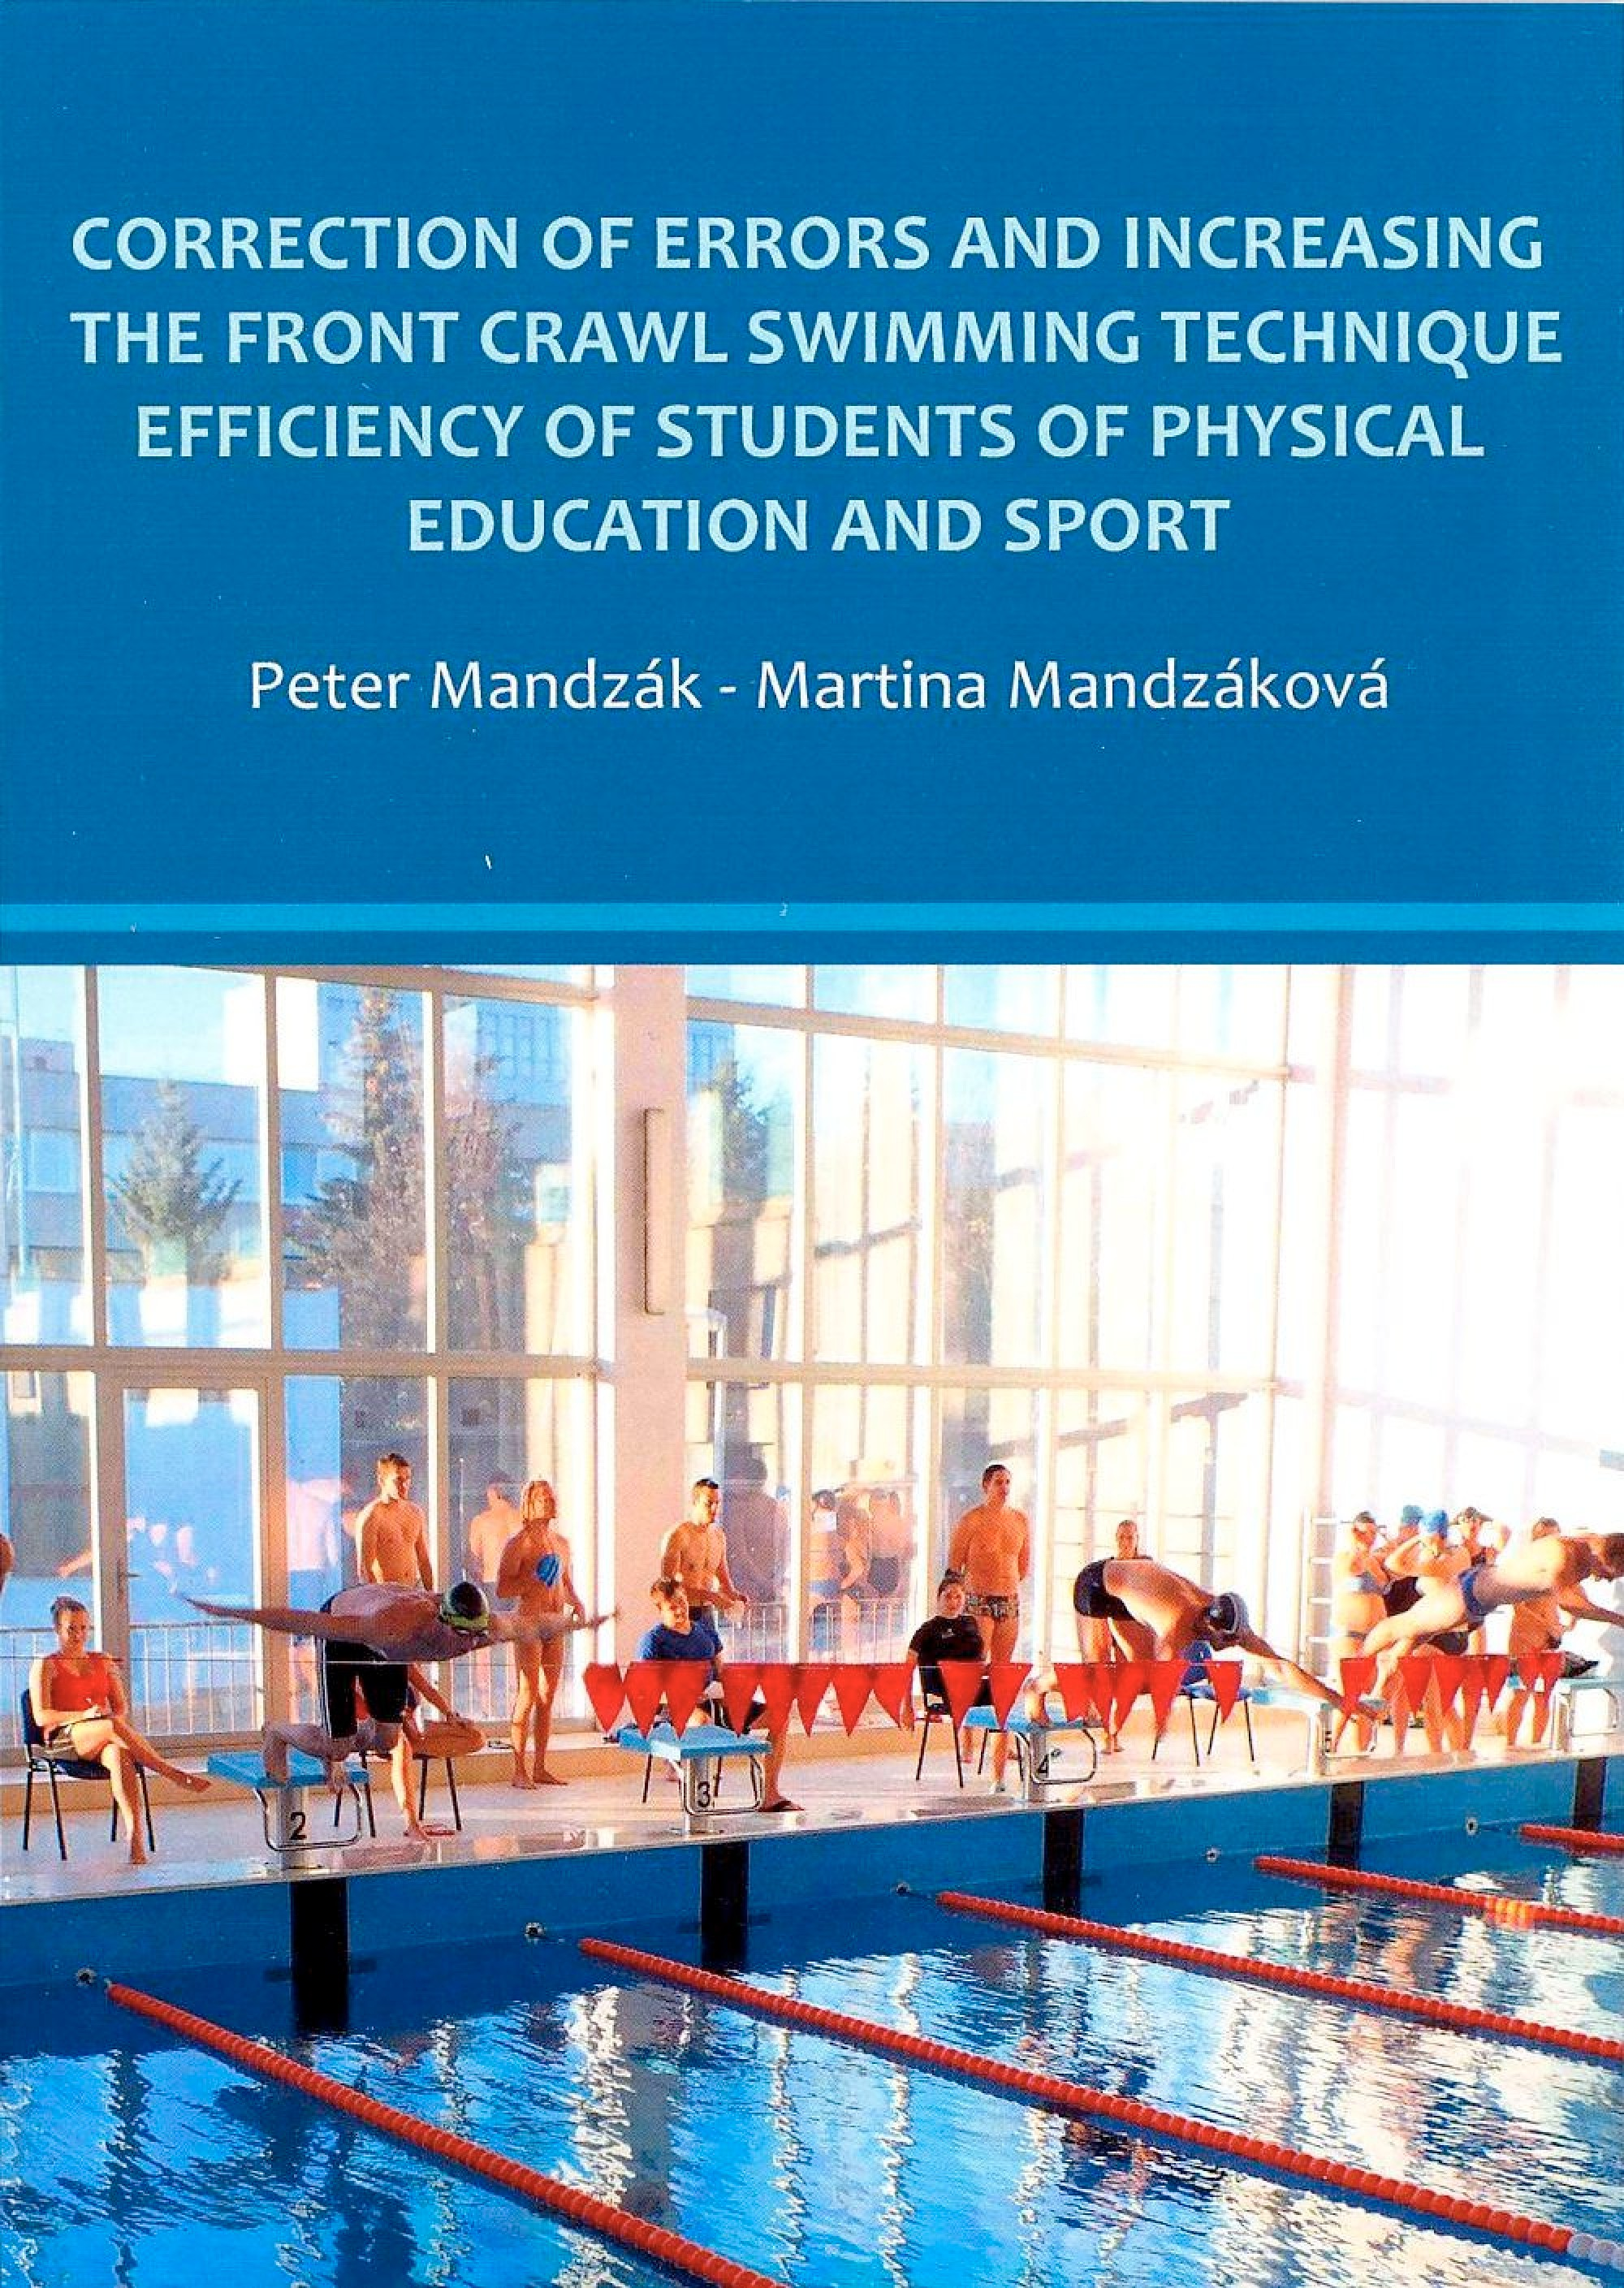 Correction of errors and Increasing the front crawl swimming technique efficiency of students of physical education and sport